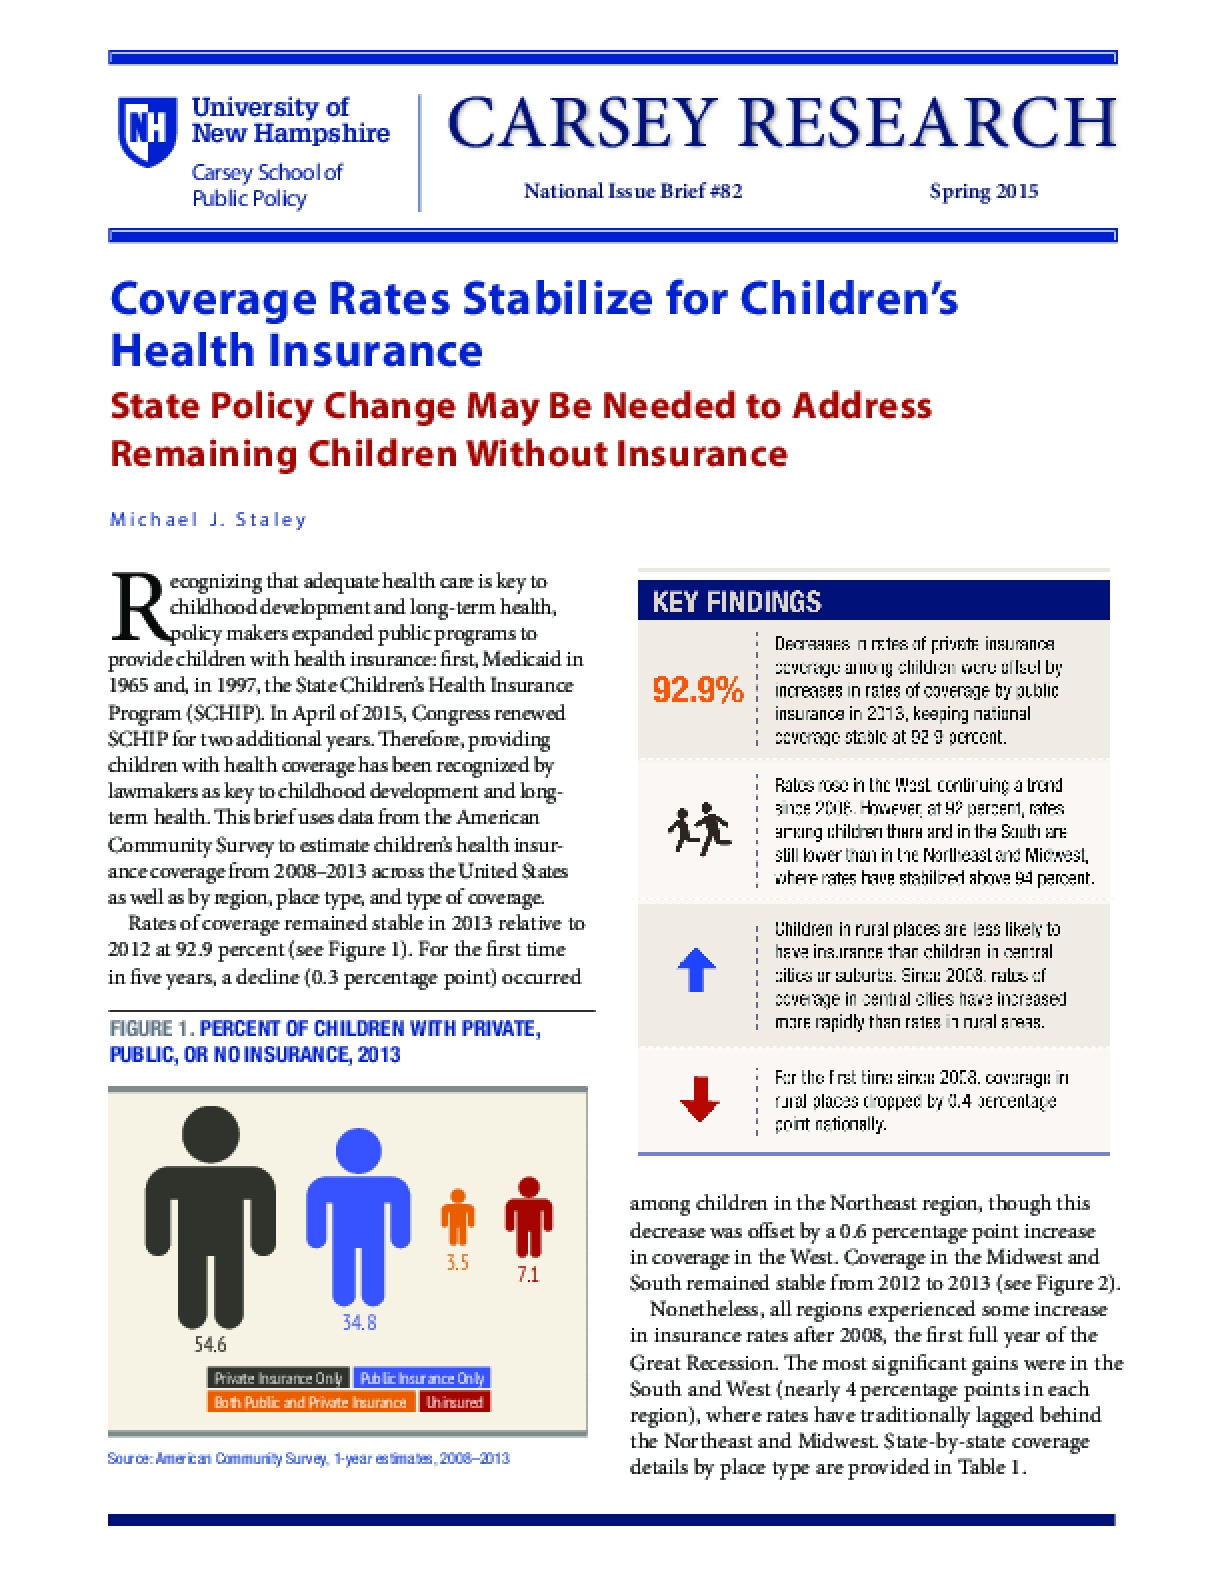 Coverage Rates Stabilize for Children's Health Insurance